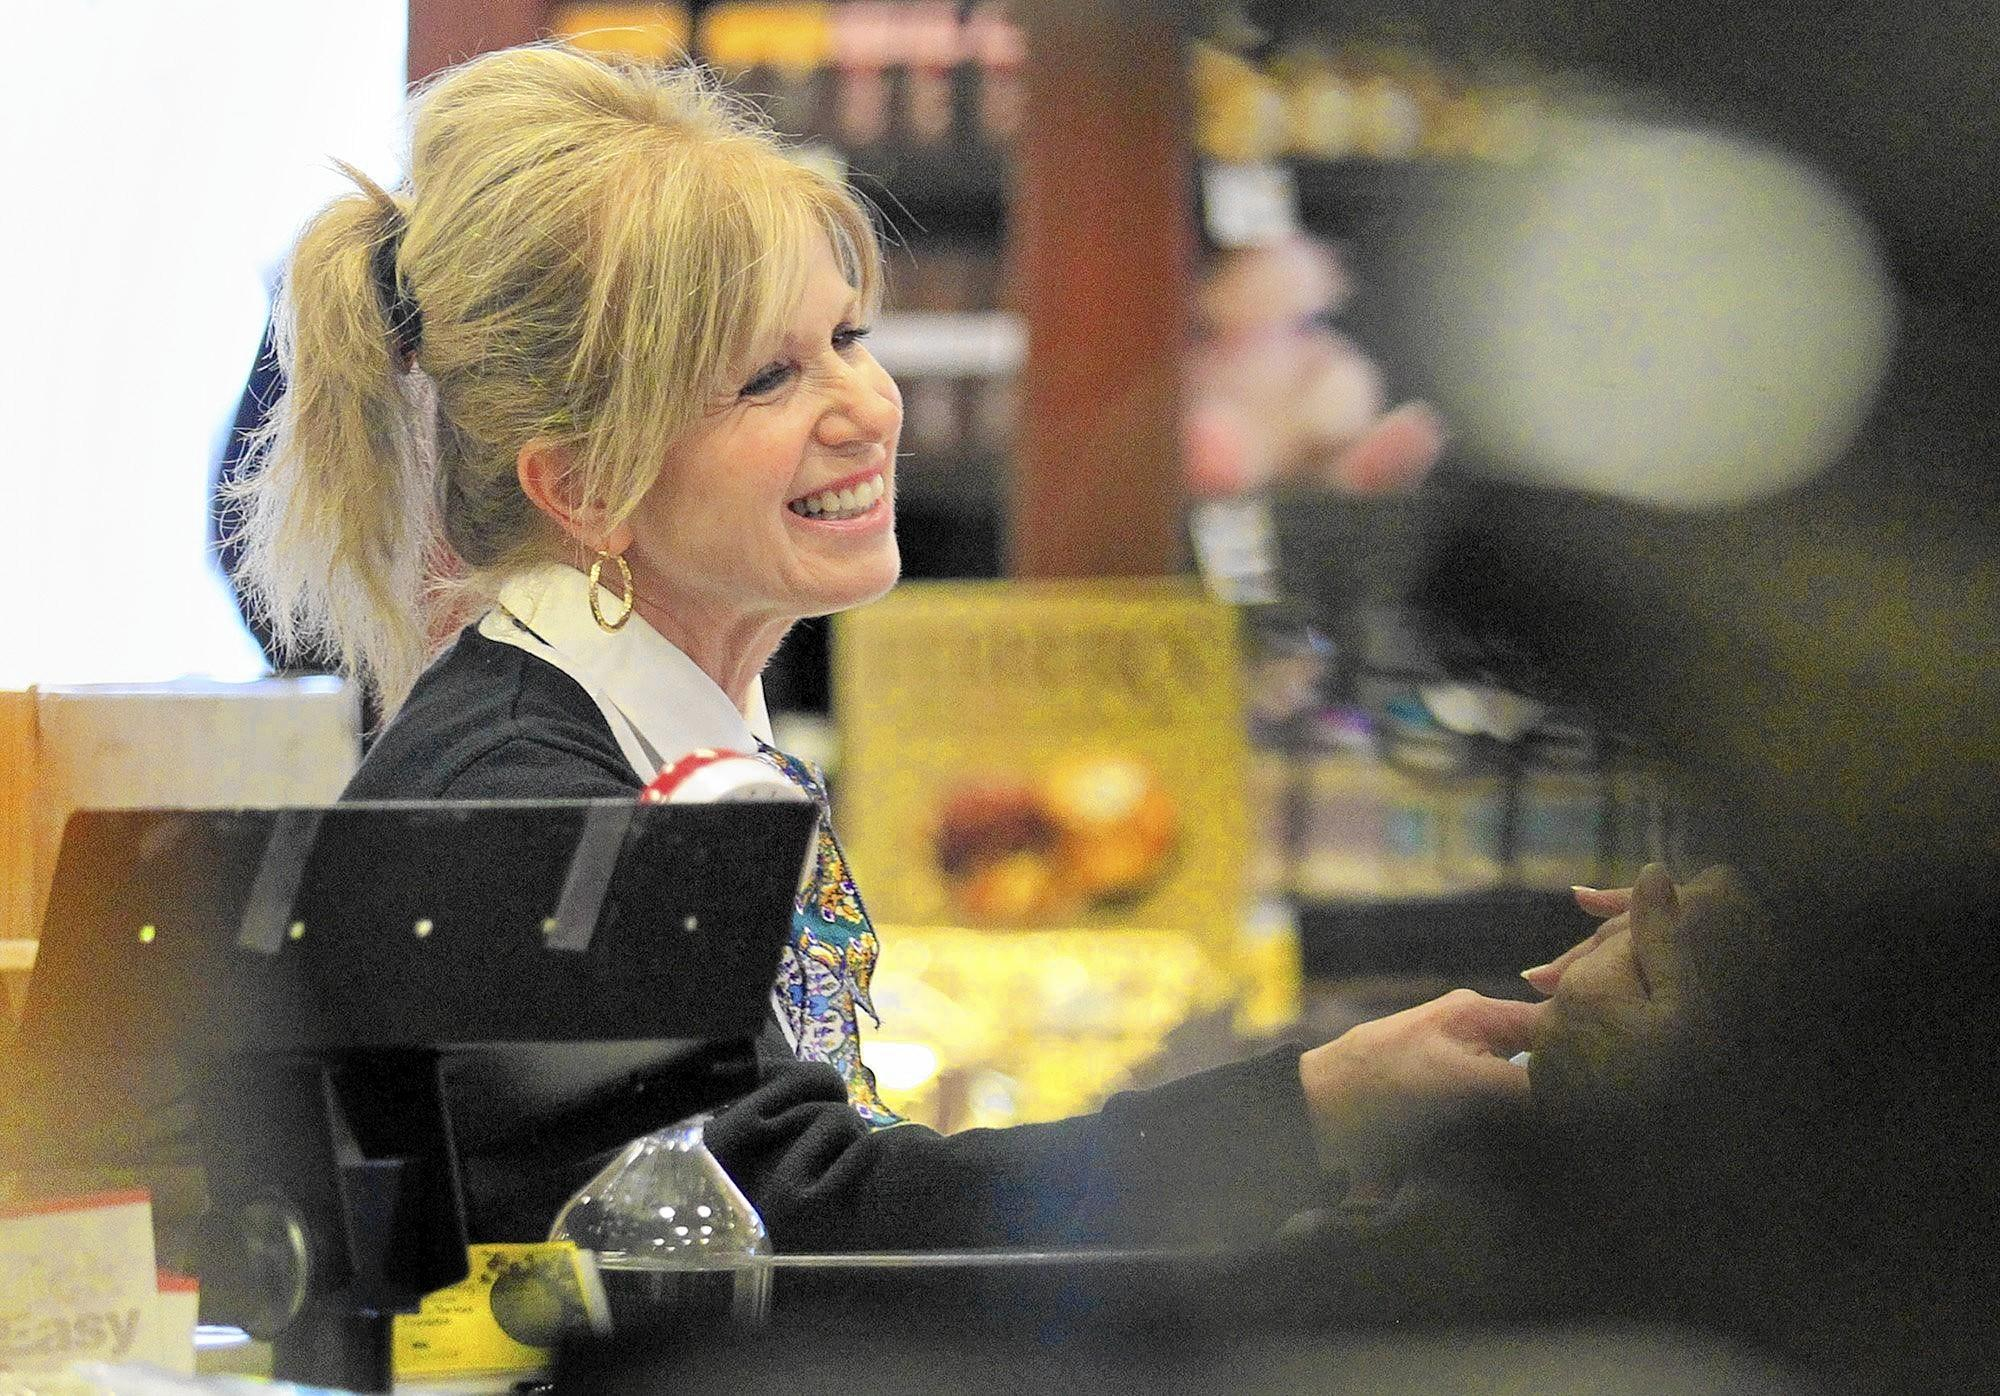 Cashier Linda Coughlin, of San Clemente, rings up a customer's groceries on her final workday at Pavilions in the Bayside Shopping Center in Newport Beach on Friday. Coughlin is retiring after 30 years of service at this Pavilions.